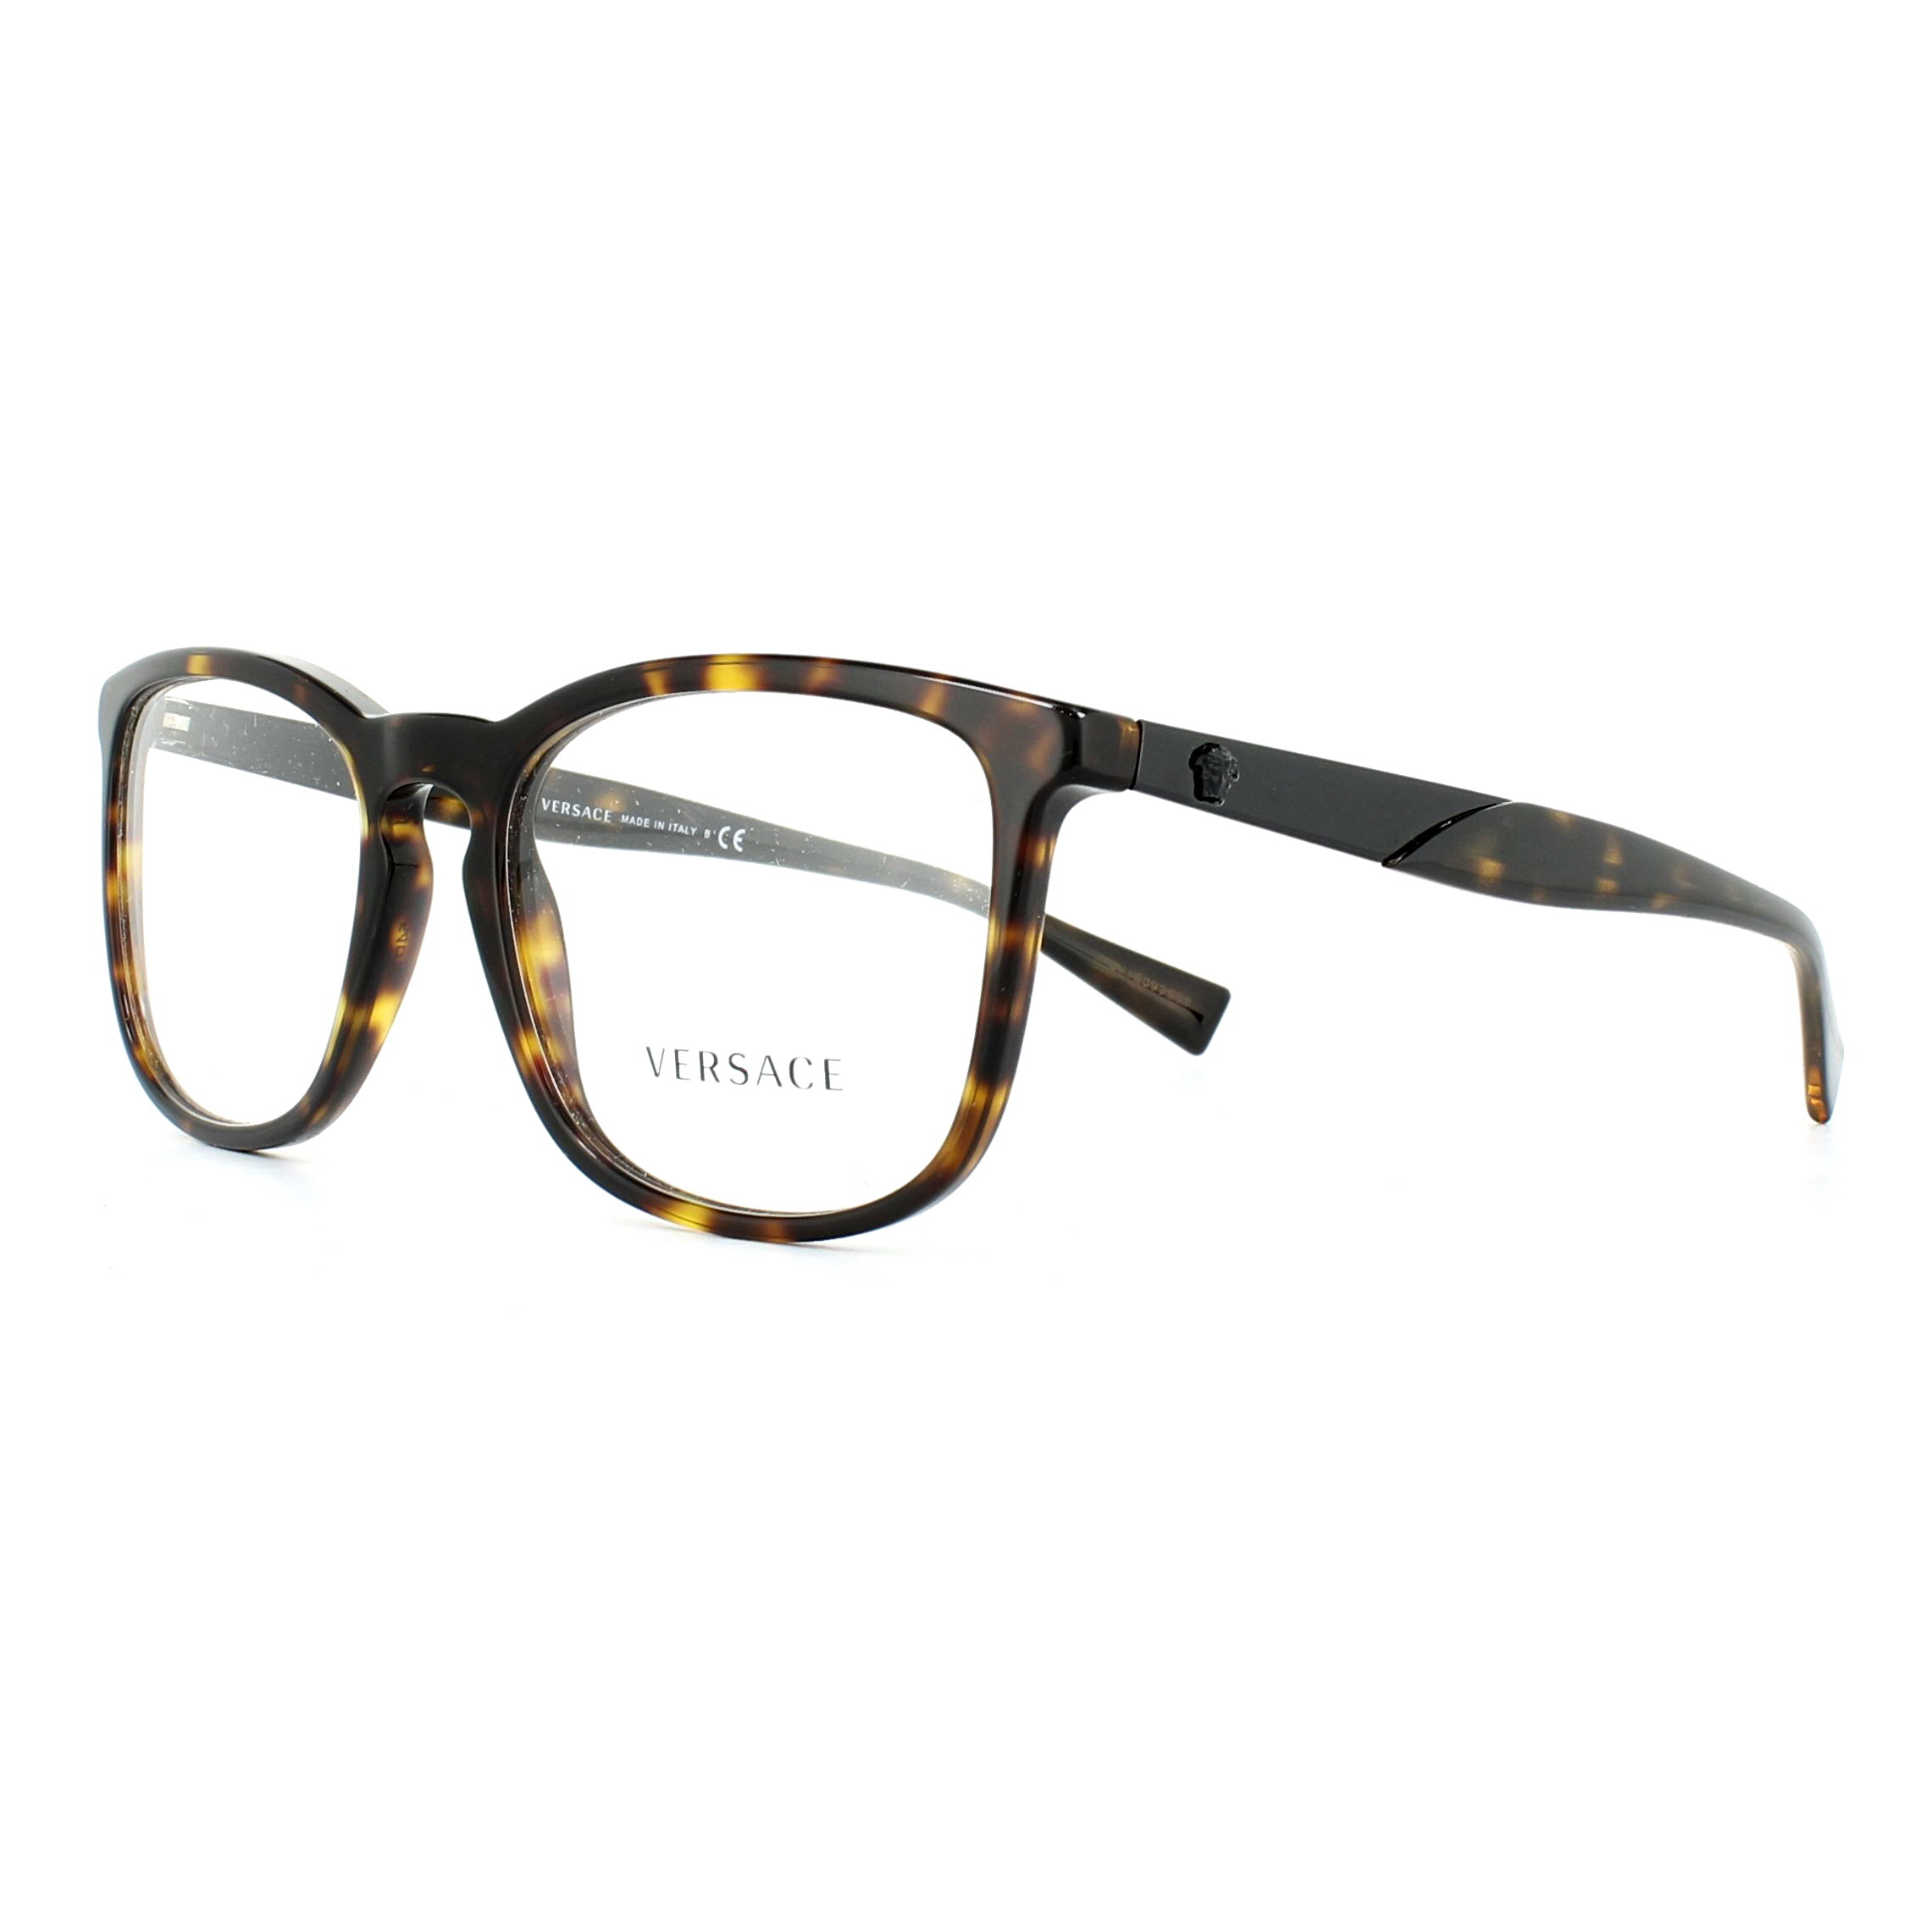 b79a9008f86 Sentinel Versace Glasses Frames 3252 108 Dark Havana 54mm Mens Womens